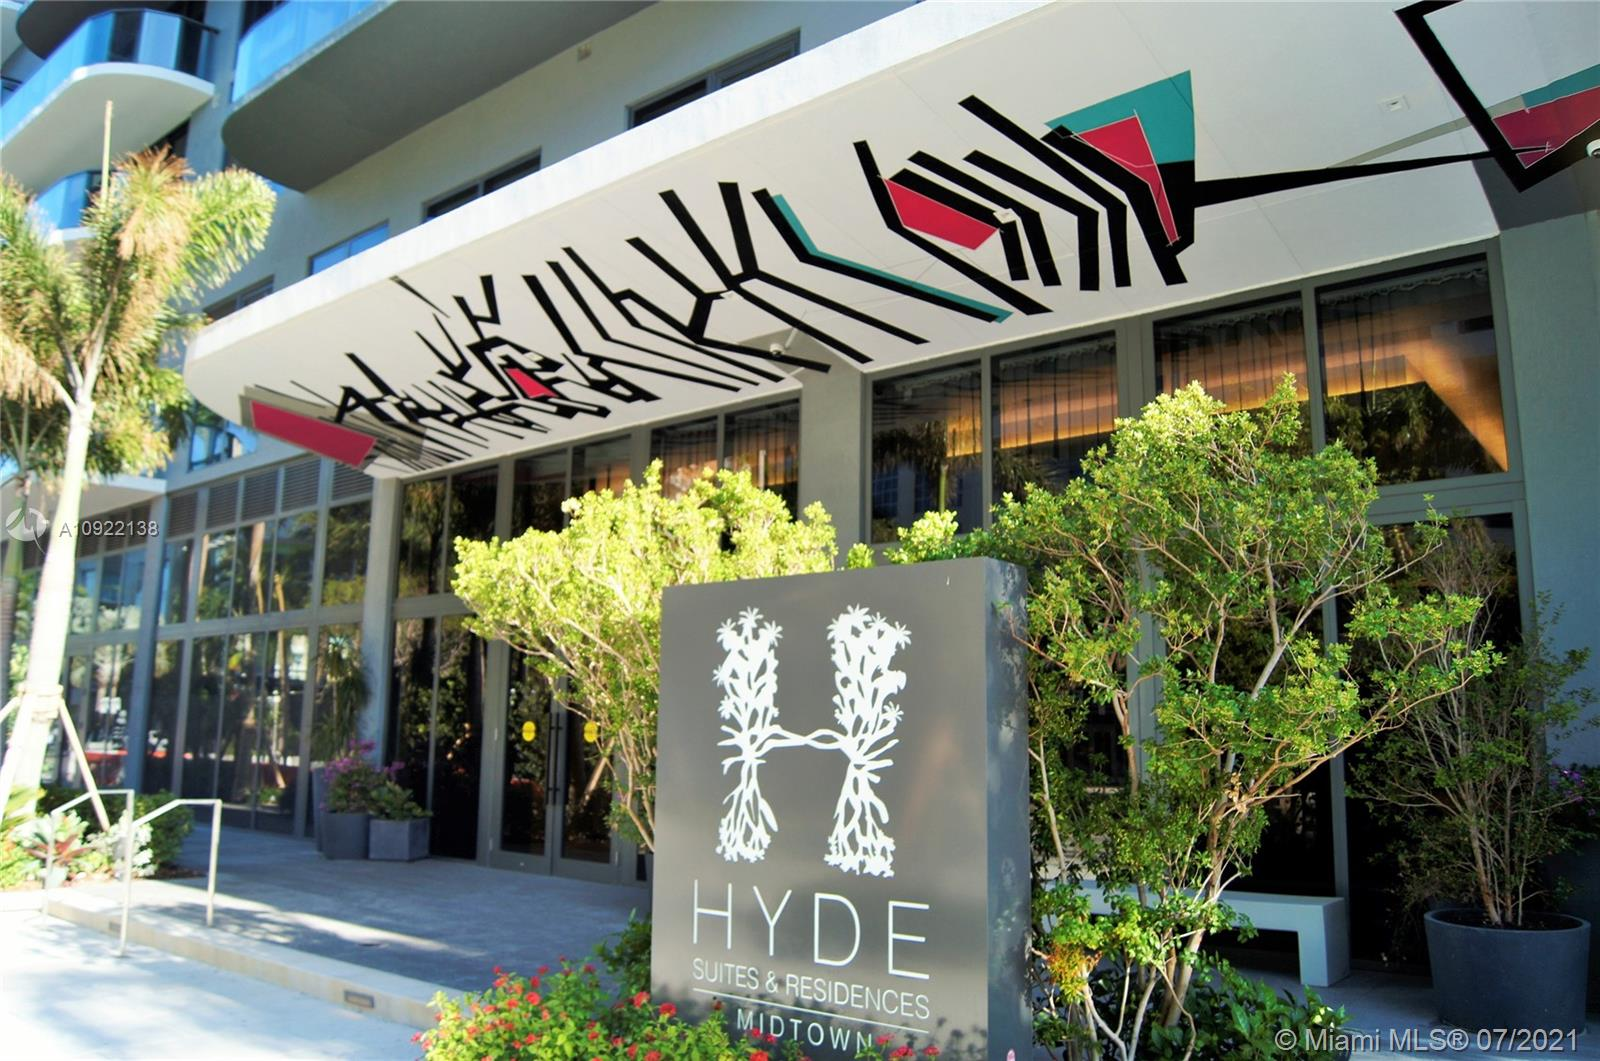 Hyde Midtown #1415 - 121 NE 34 #1415, Miami, FL 33137